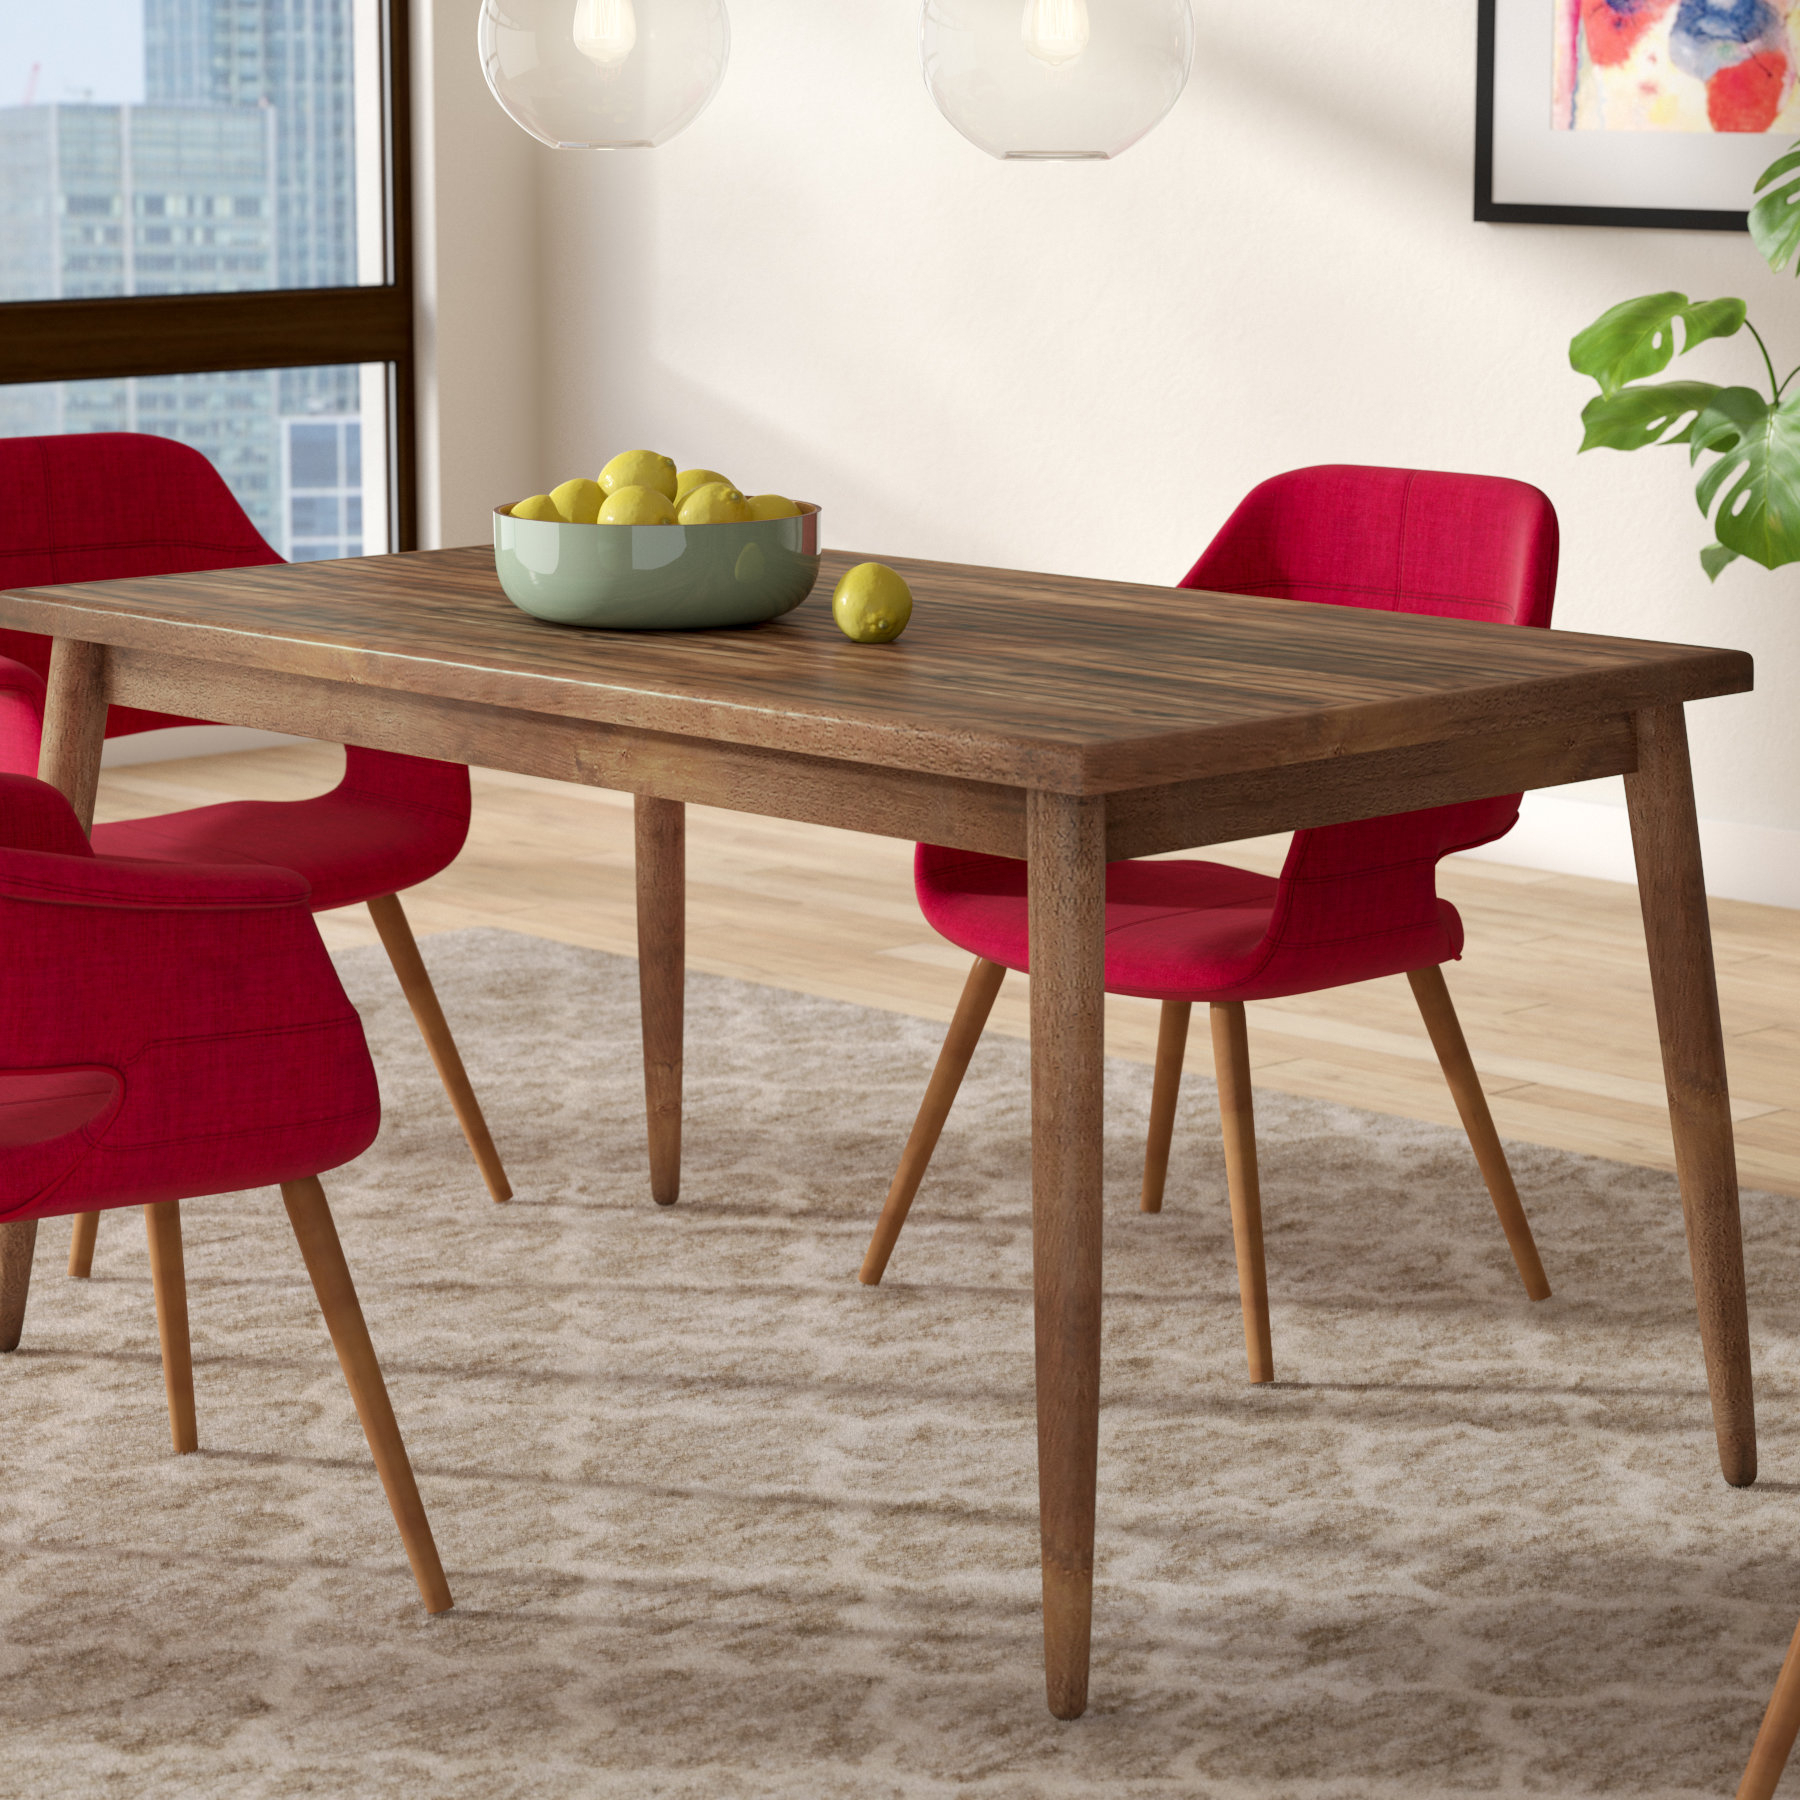 2017 Lydia Dining Table Intended For Amir 5 Piece Solid Wood Dining Sets (Set Of 5) (Gallery 20 of 20)